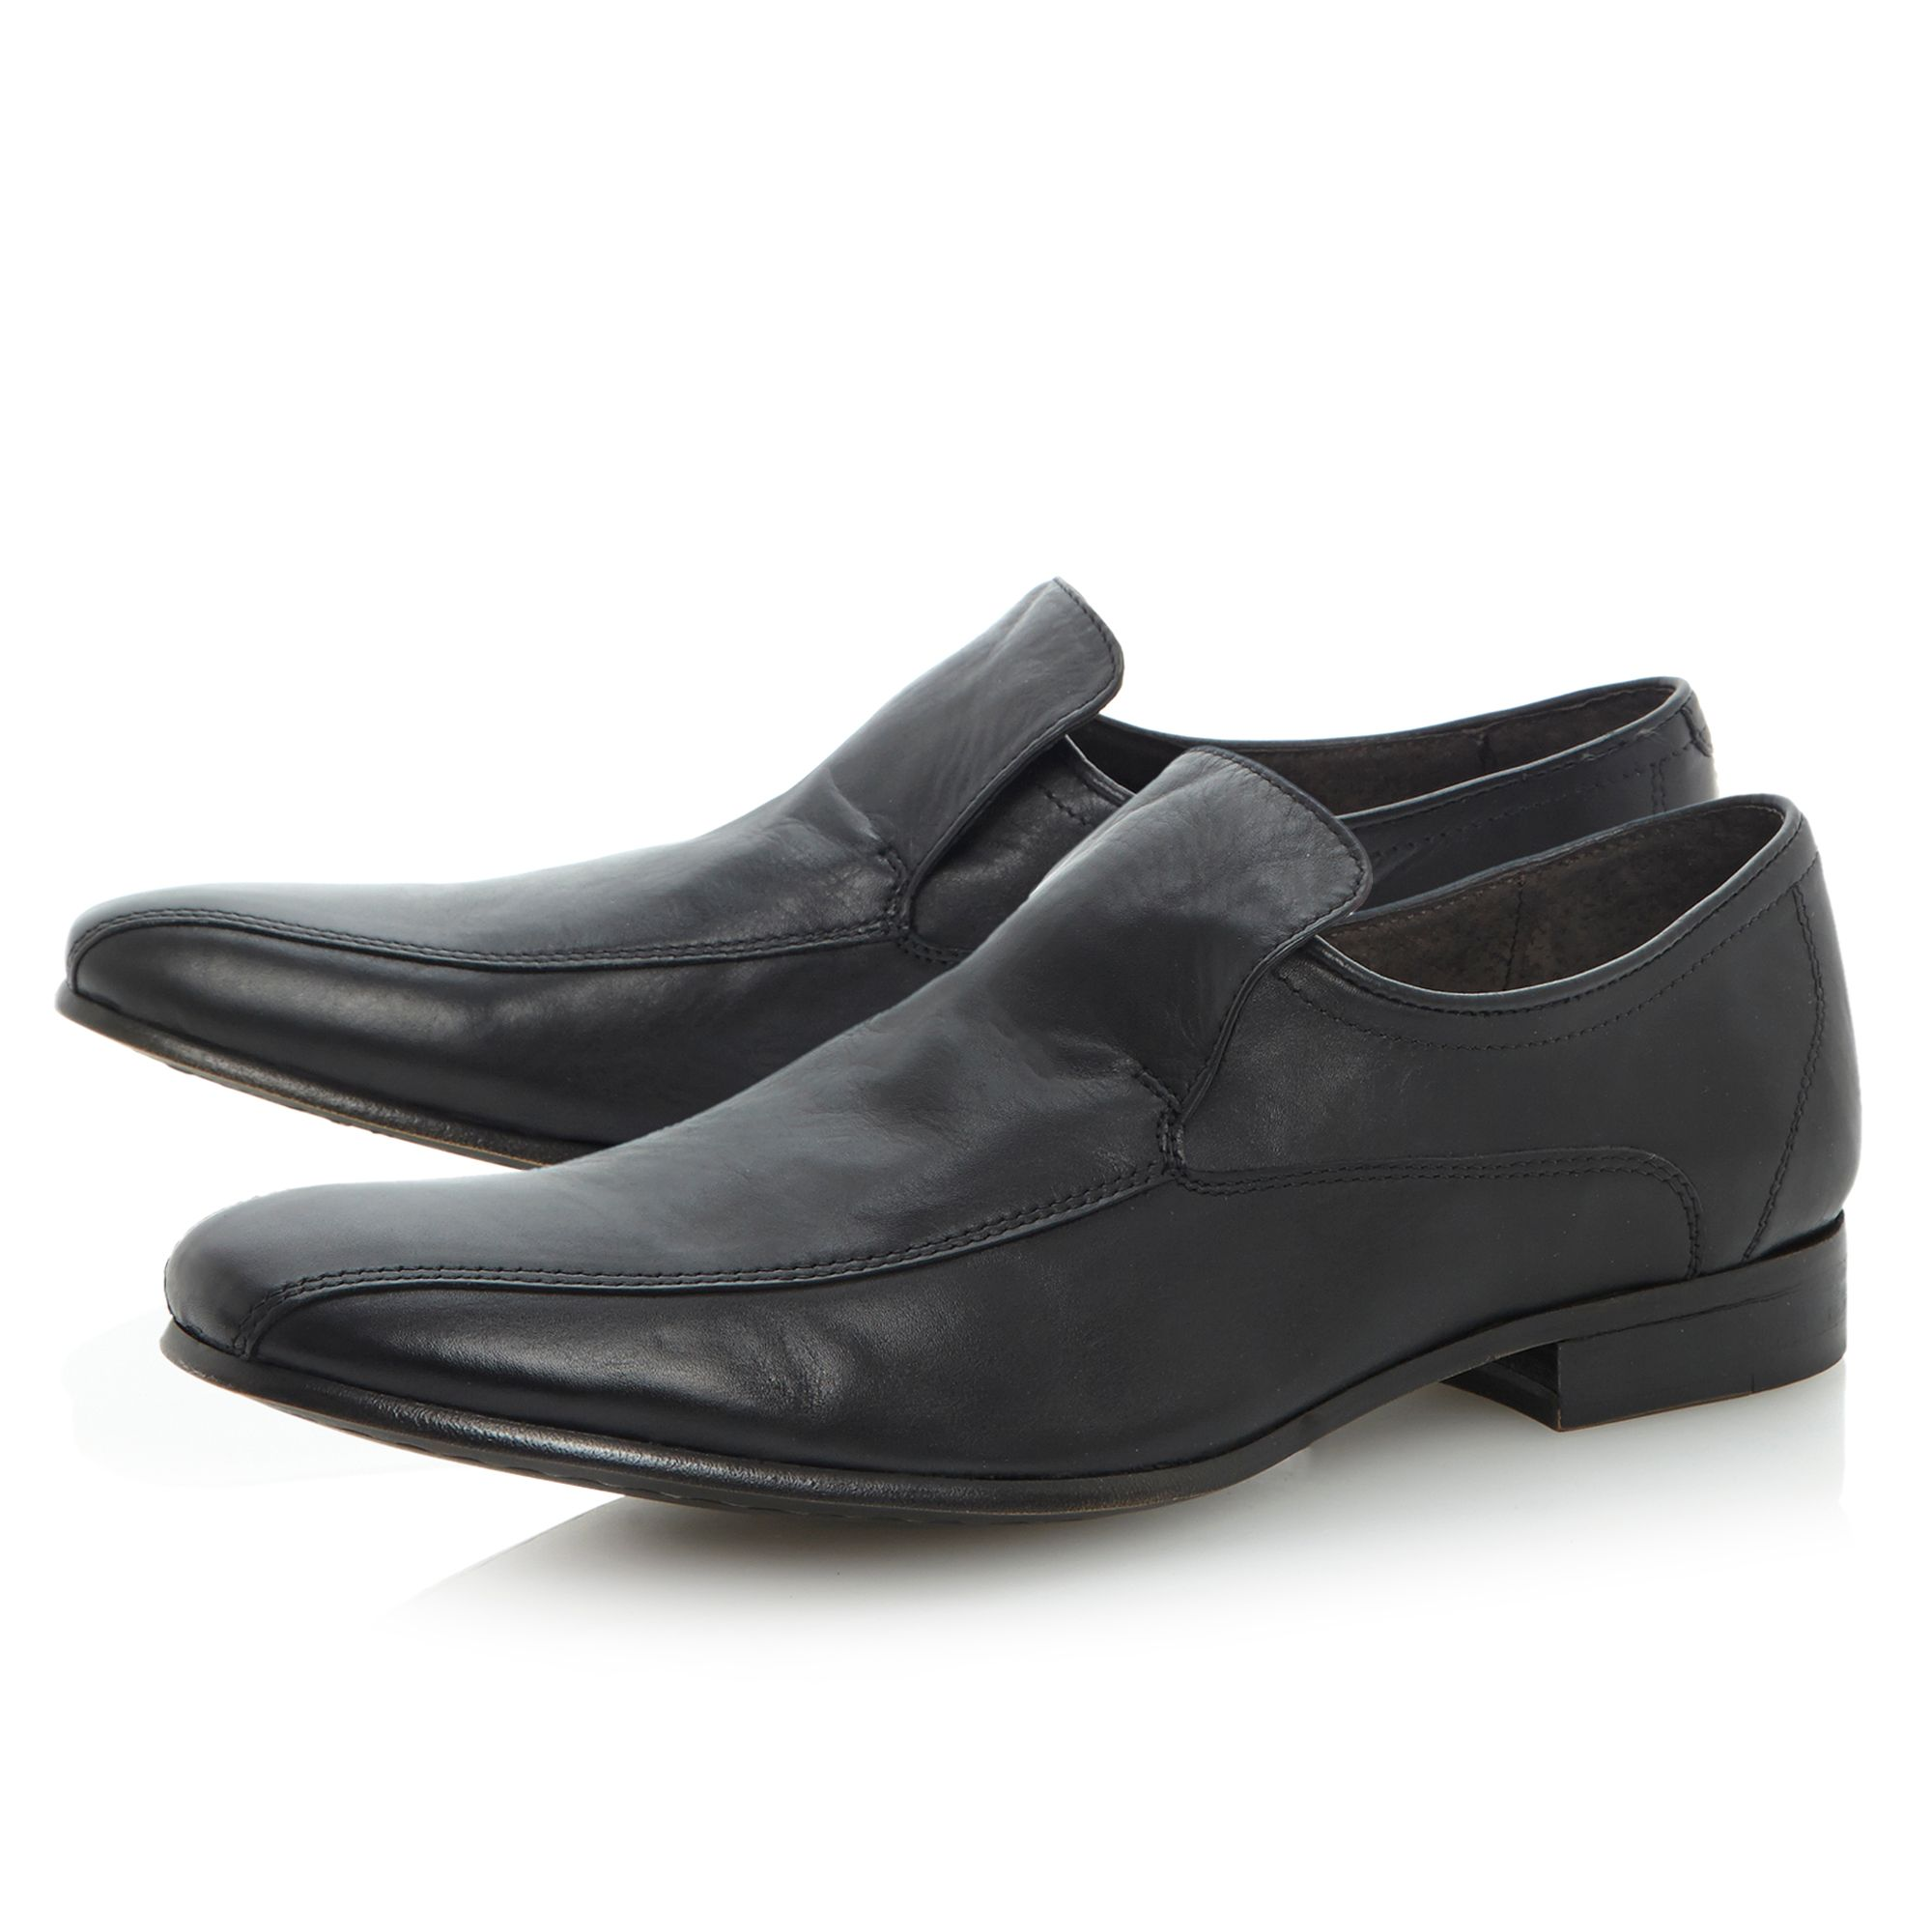 Acton Lane tramline loafer